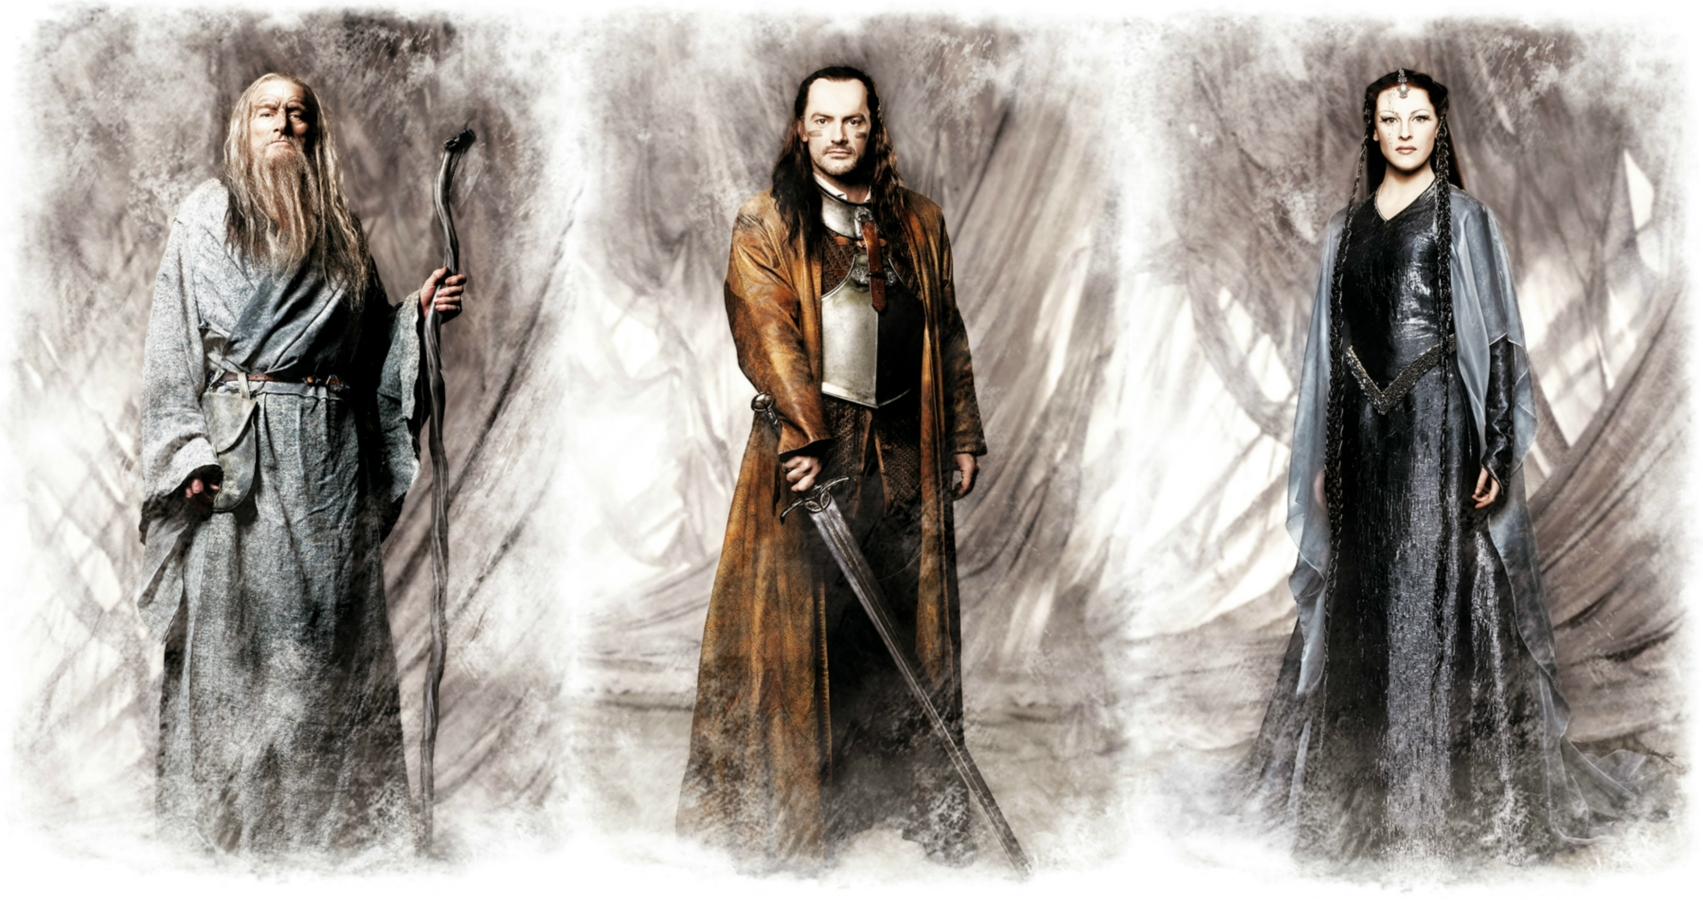 Lord of the Rings, Gandalf - Andrew Jarvis, Aragorn - Jérome Pradon and Arwen - Rosalie